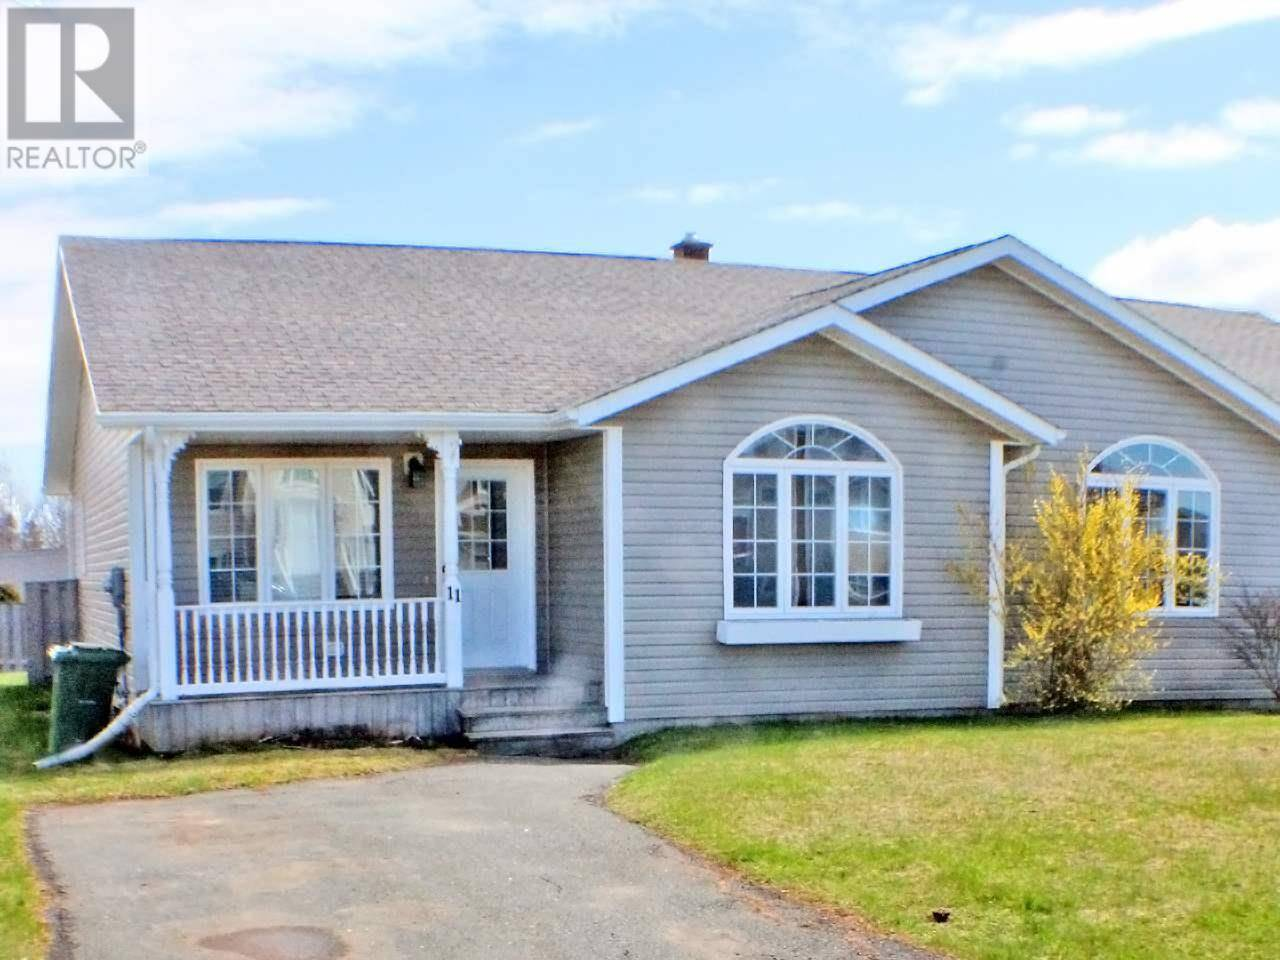 House for sale at 11 Porter Dr Charlottetown Prince Edward Island - MLS: 202003127